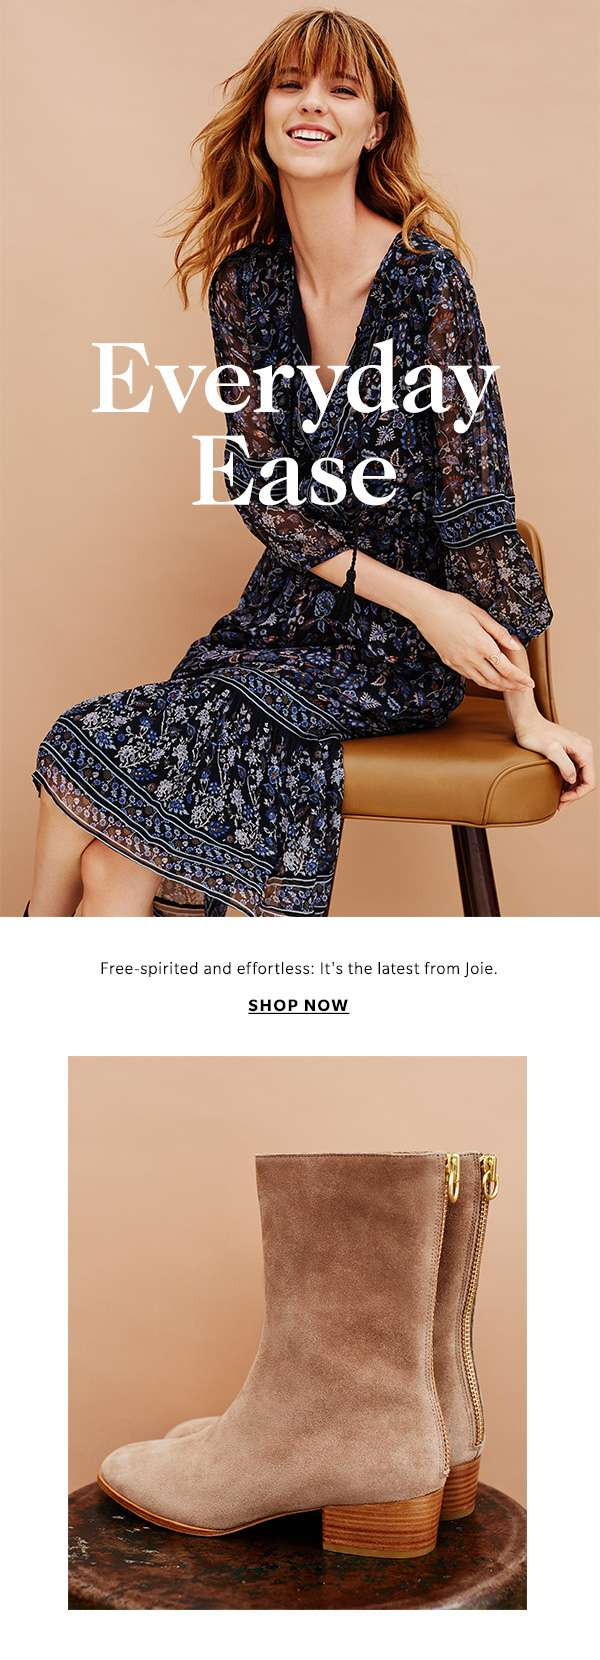 Free-spirited and effortless: It's the latest from Joie.